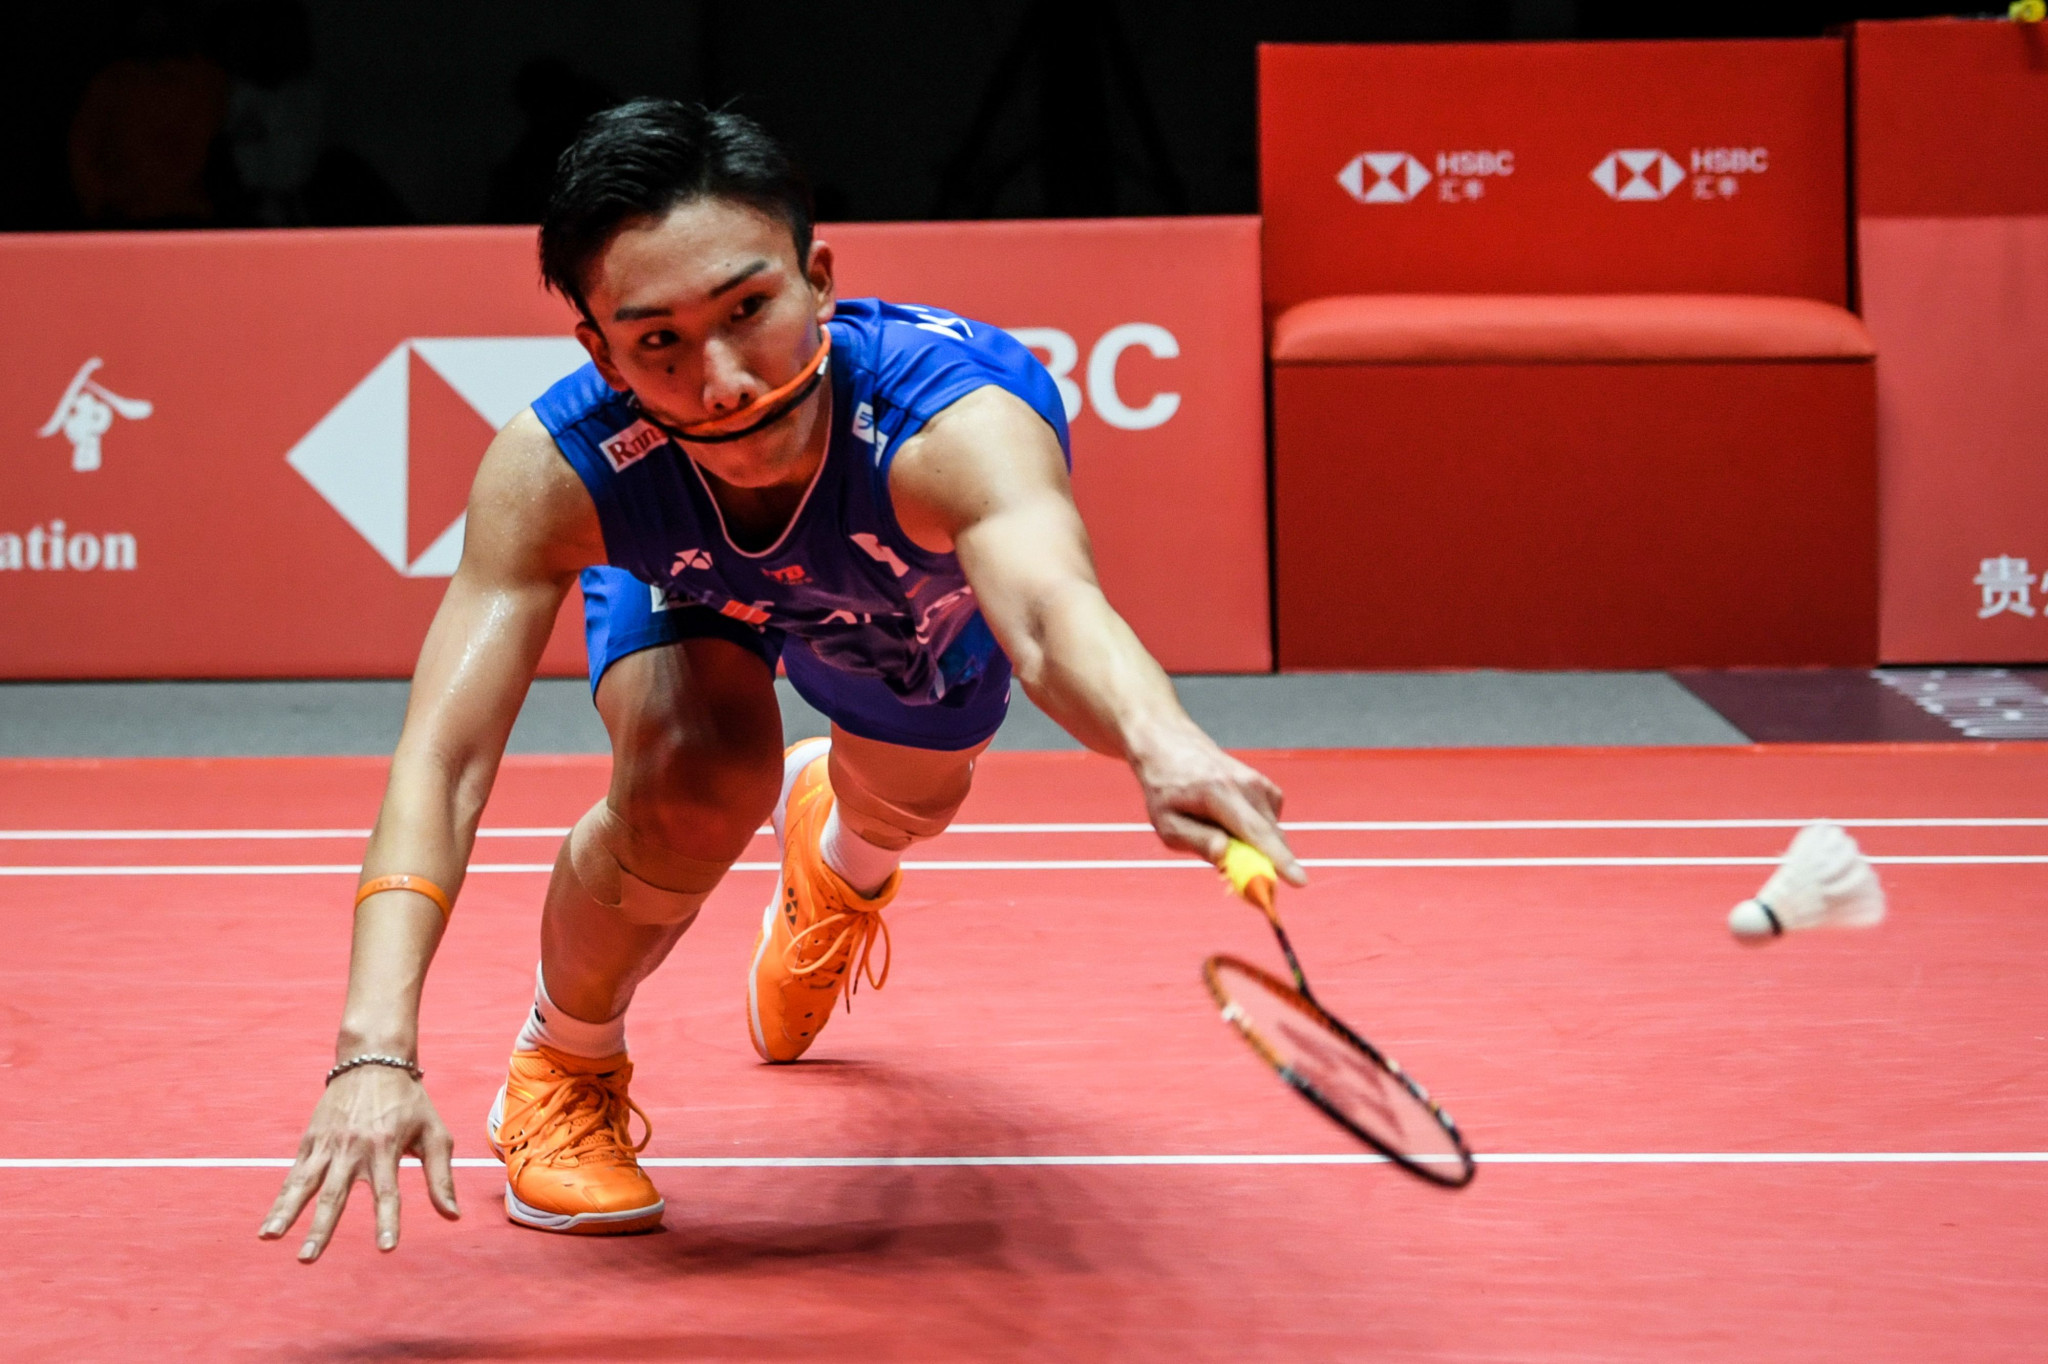 Top seed Momota safely through to quarter-finals at All England Open Badminton Championships